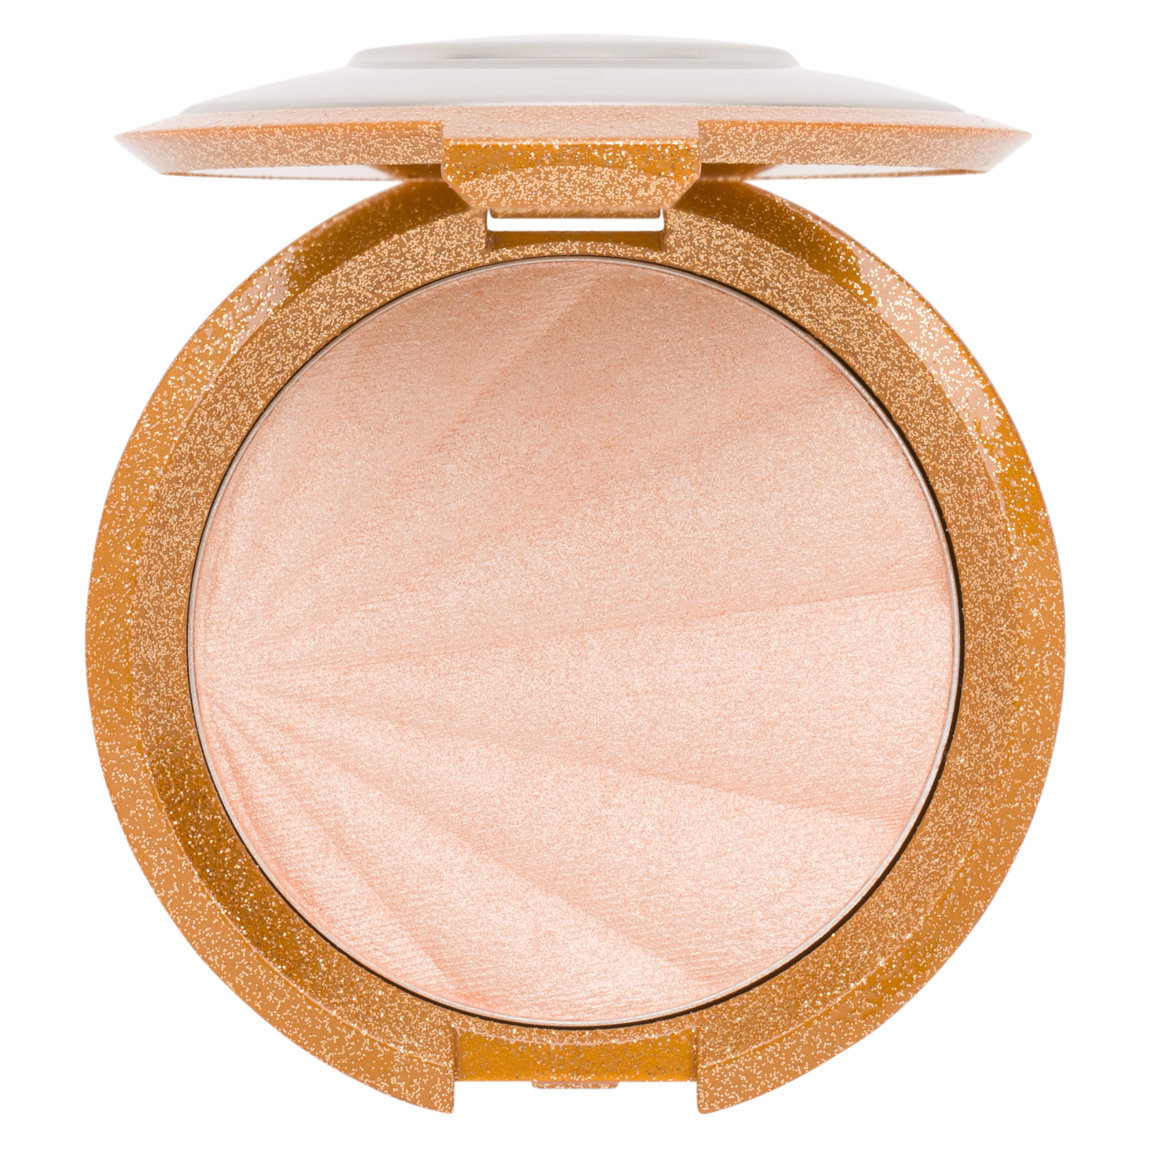 BECCA Collector's Edition: Shimmering Skin Perfector Pressed Highlighter Champagne Pop product smear.